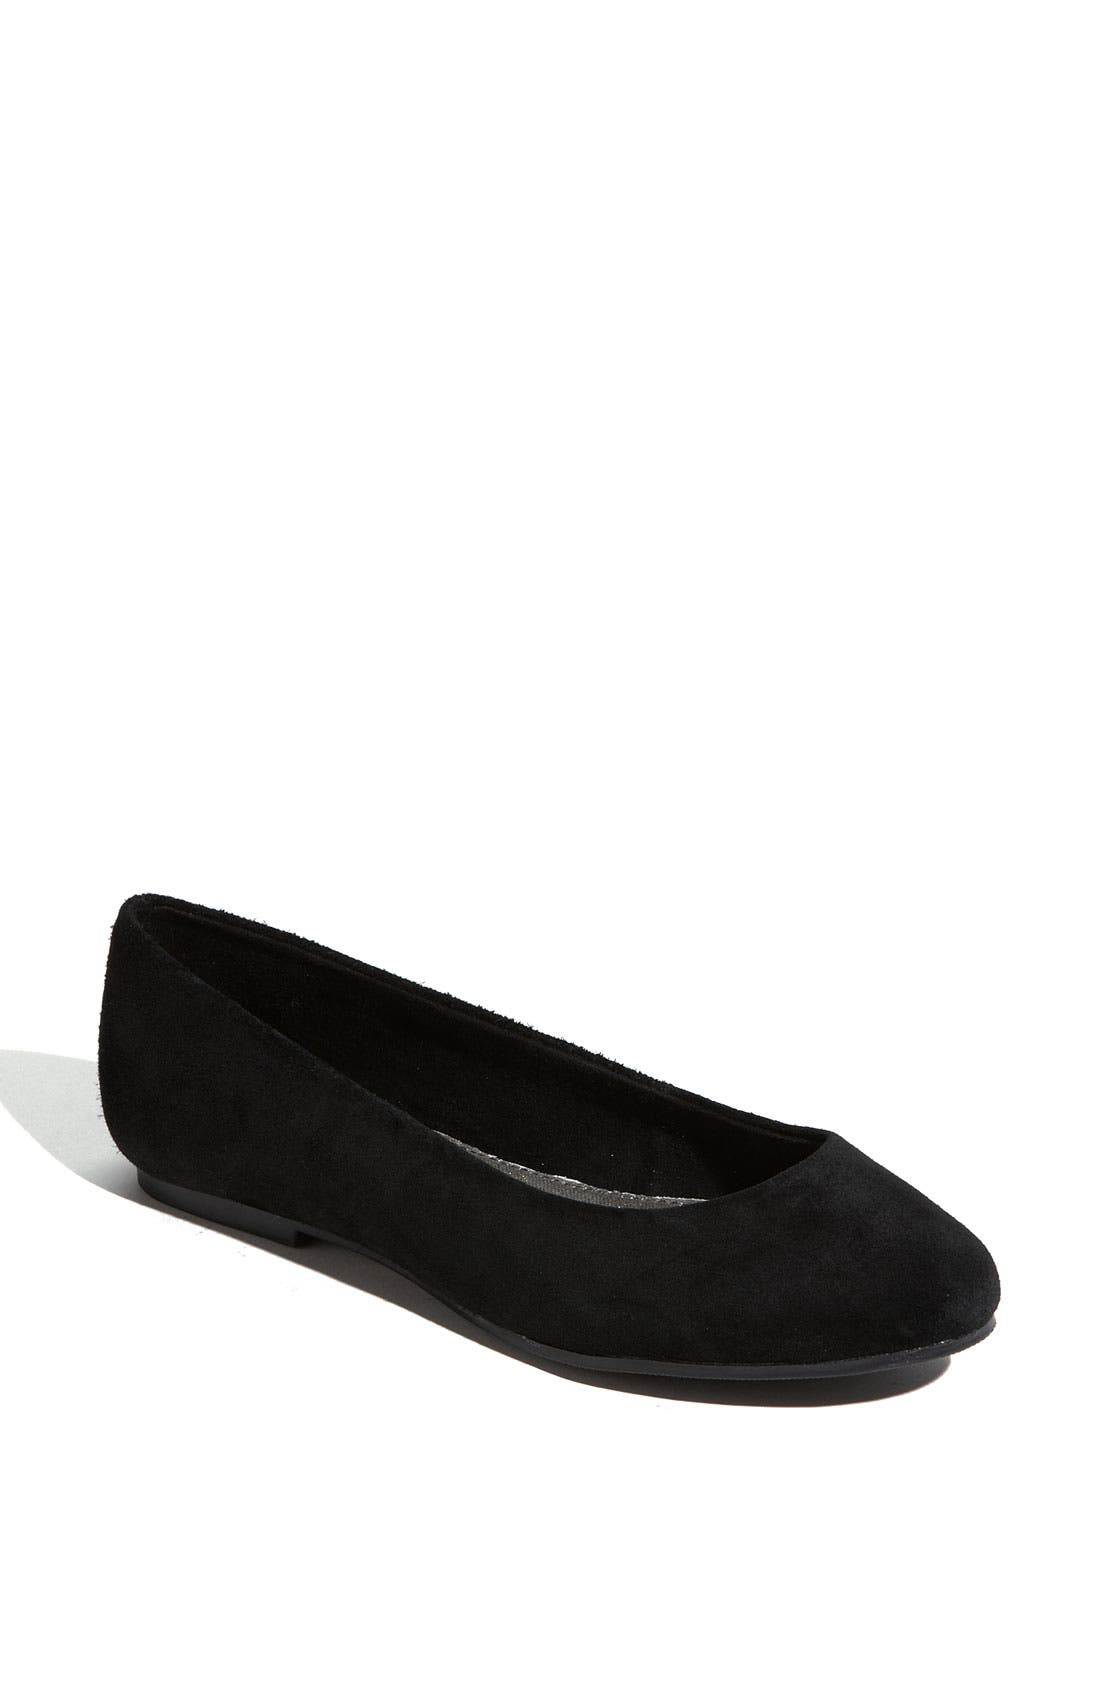 Alternate Image 1 Selected - BC Footwear 'Limousine' Suede Flat